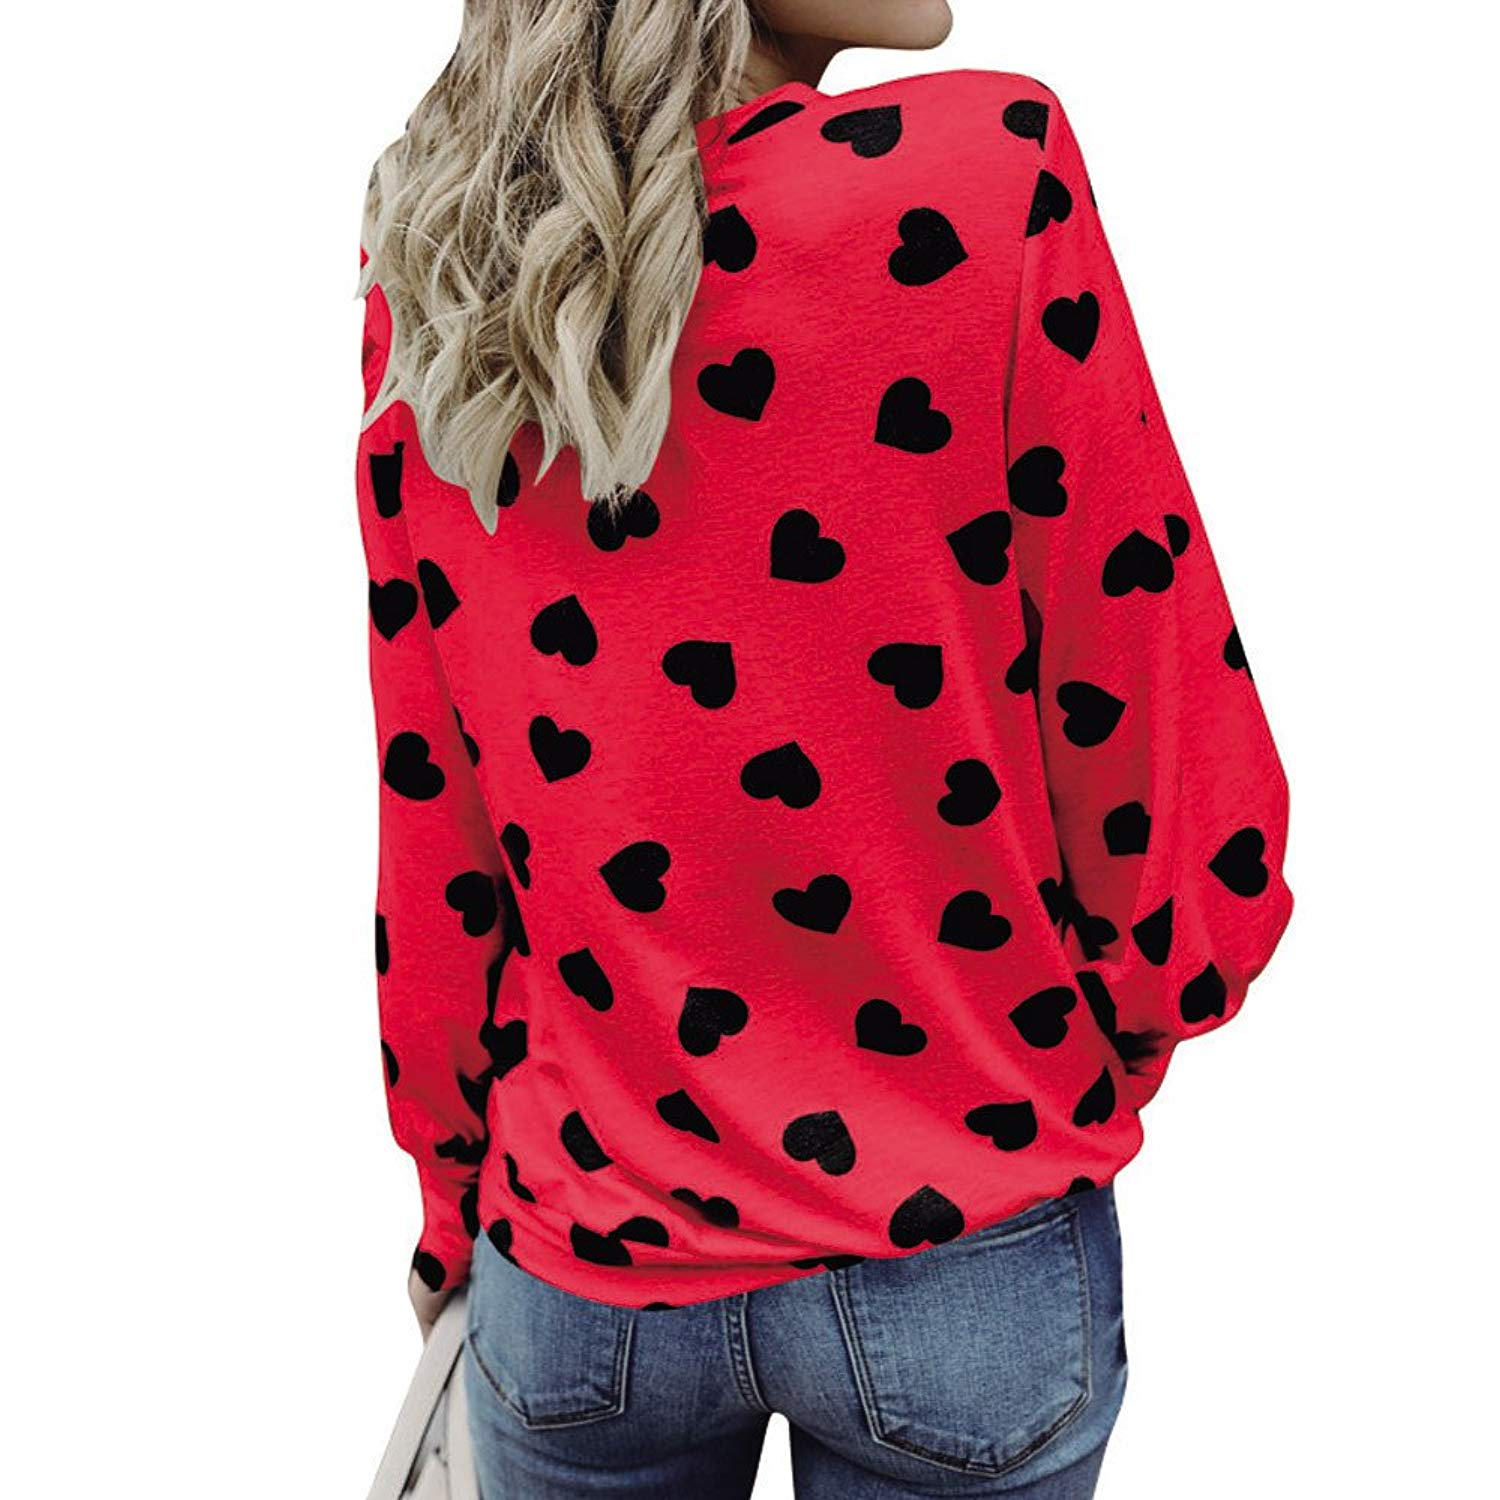 UPLOTER__Shirts Women Love Printing Long Sleeve Crop Jumper Pullover Tops